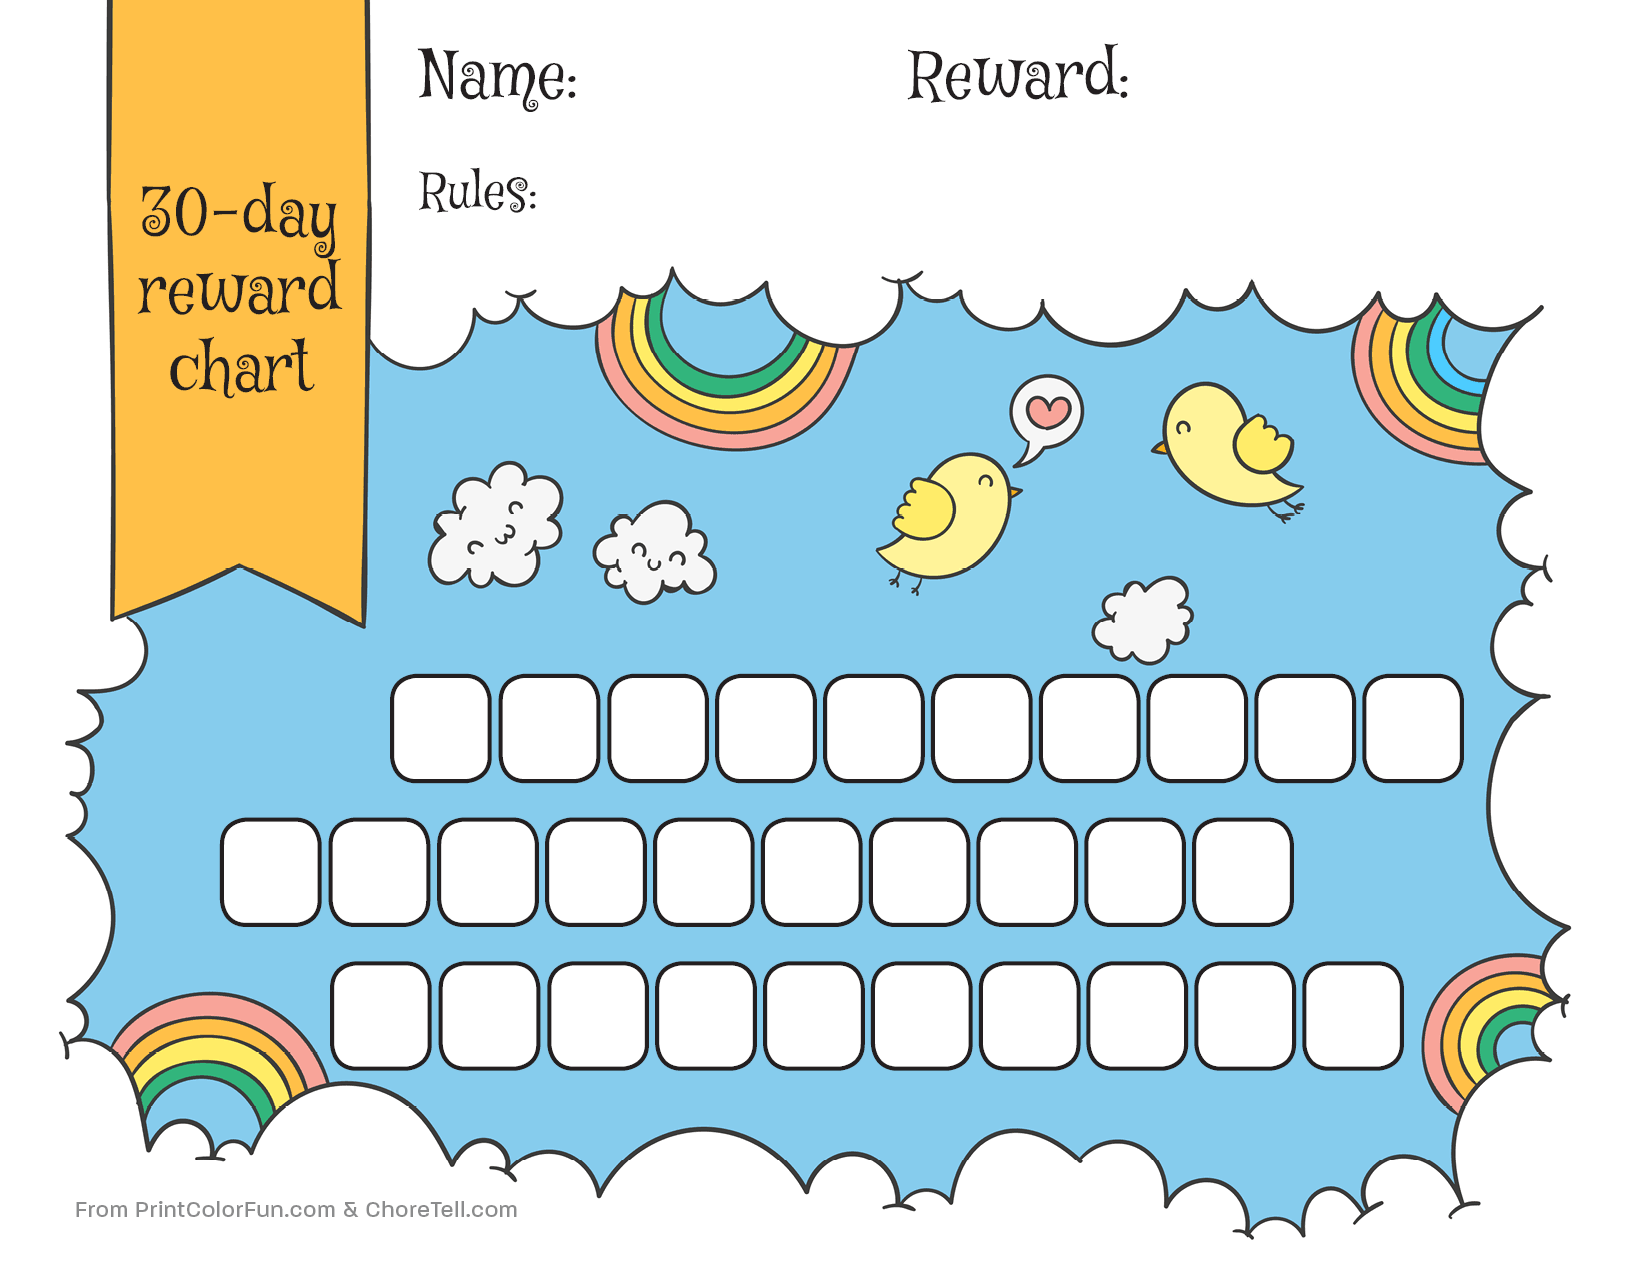 photograph about Printable Rewards Charts identified as Rainbow sky 30-working day gain chart for small children - Absolutely free printable